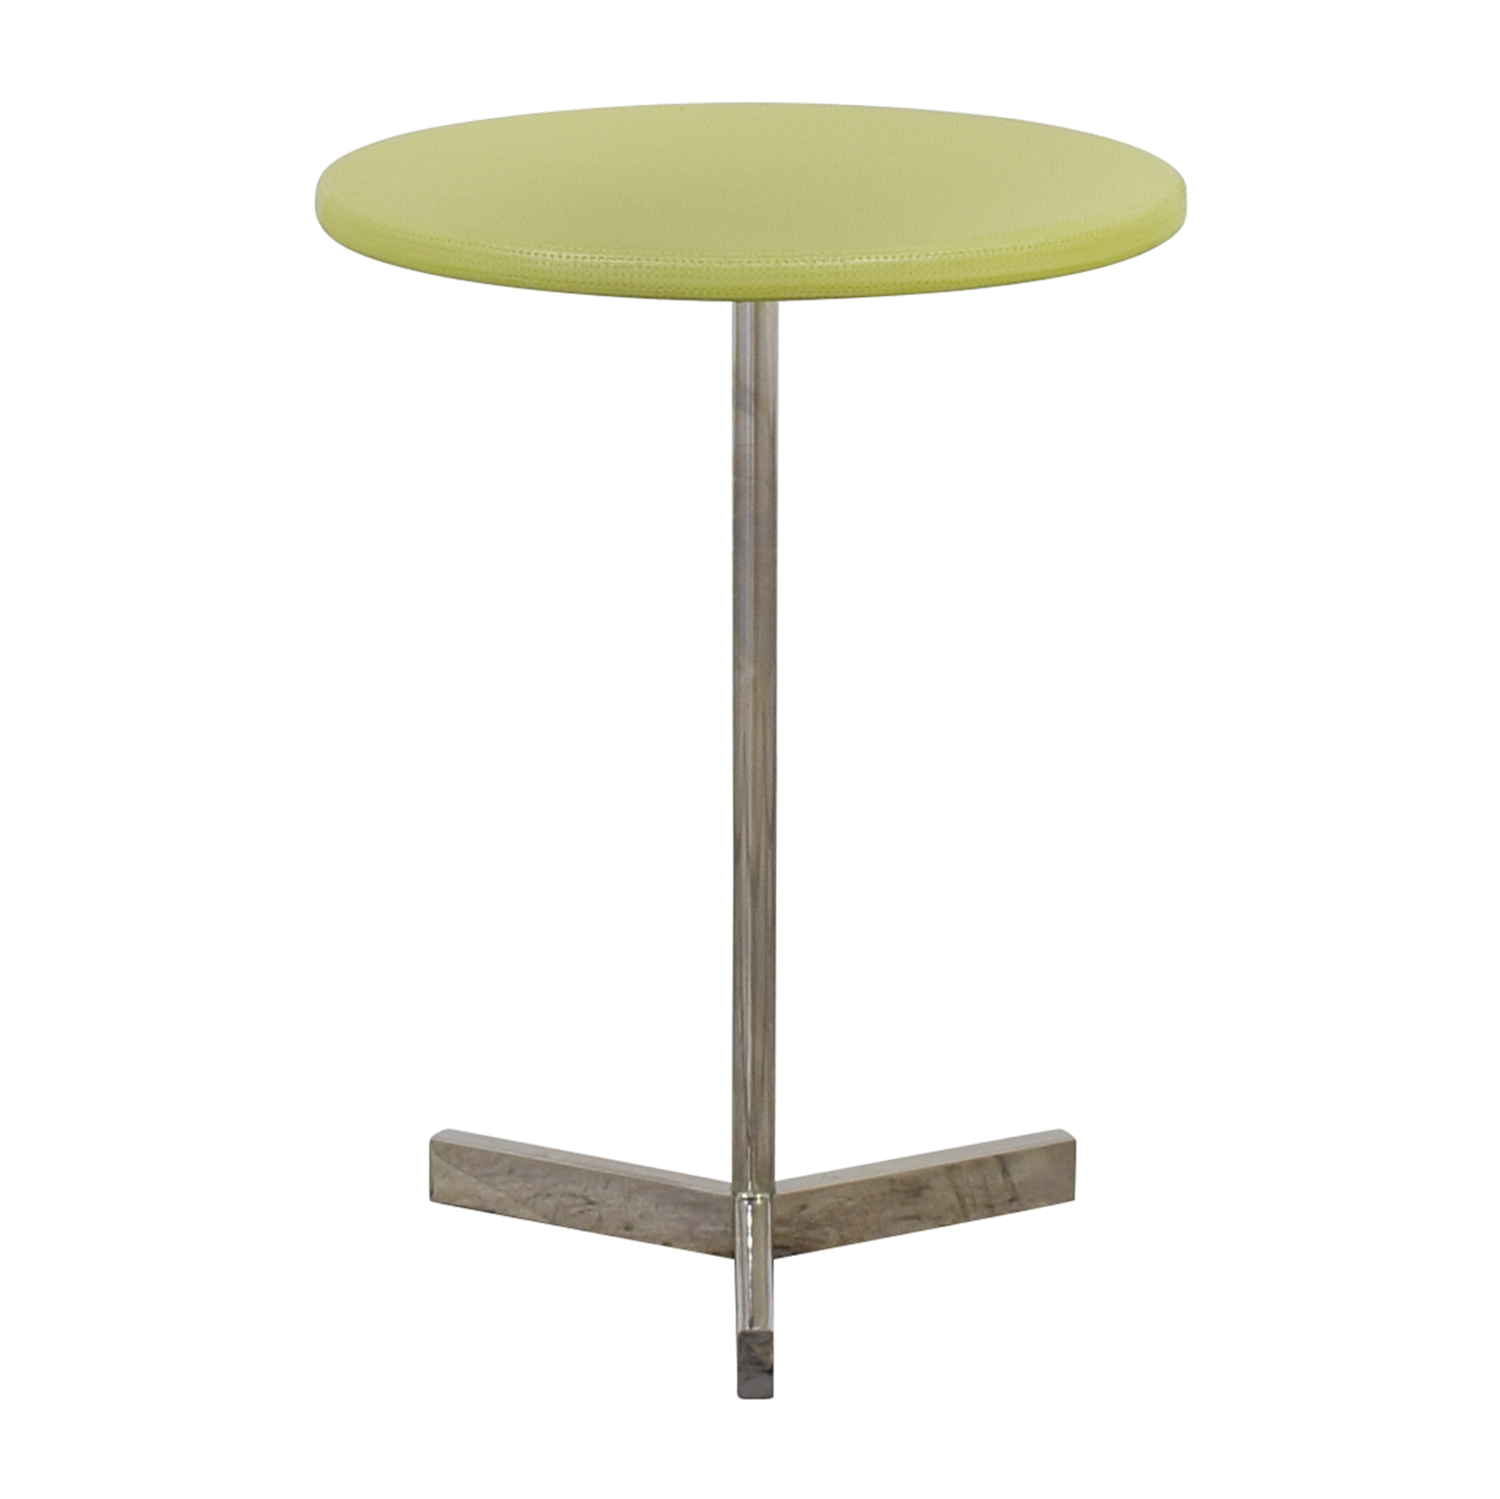 Stonebrook Interiors Stonebrook Interiors Y-Base Table price